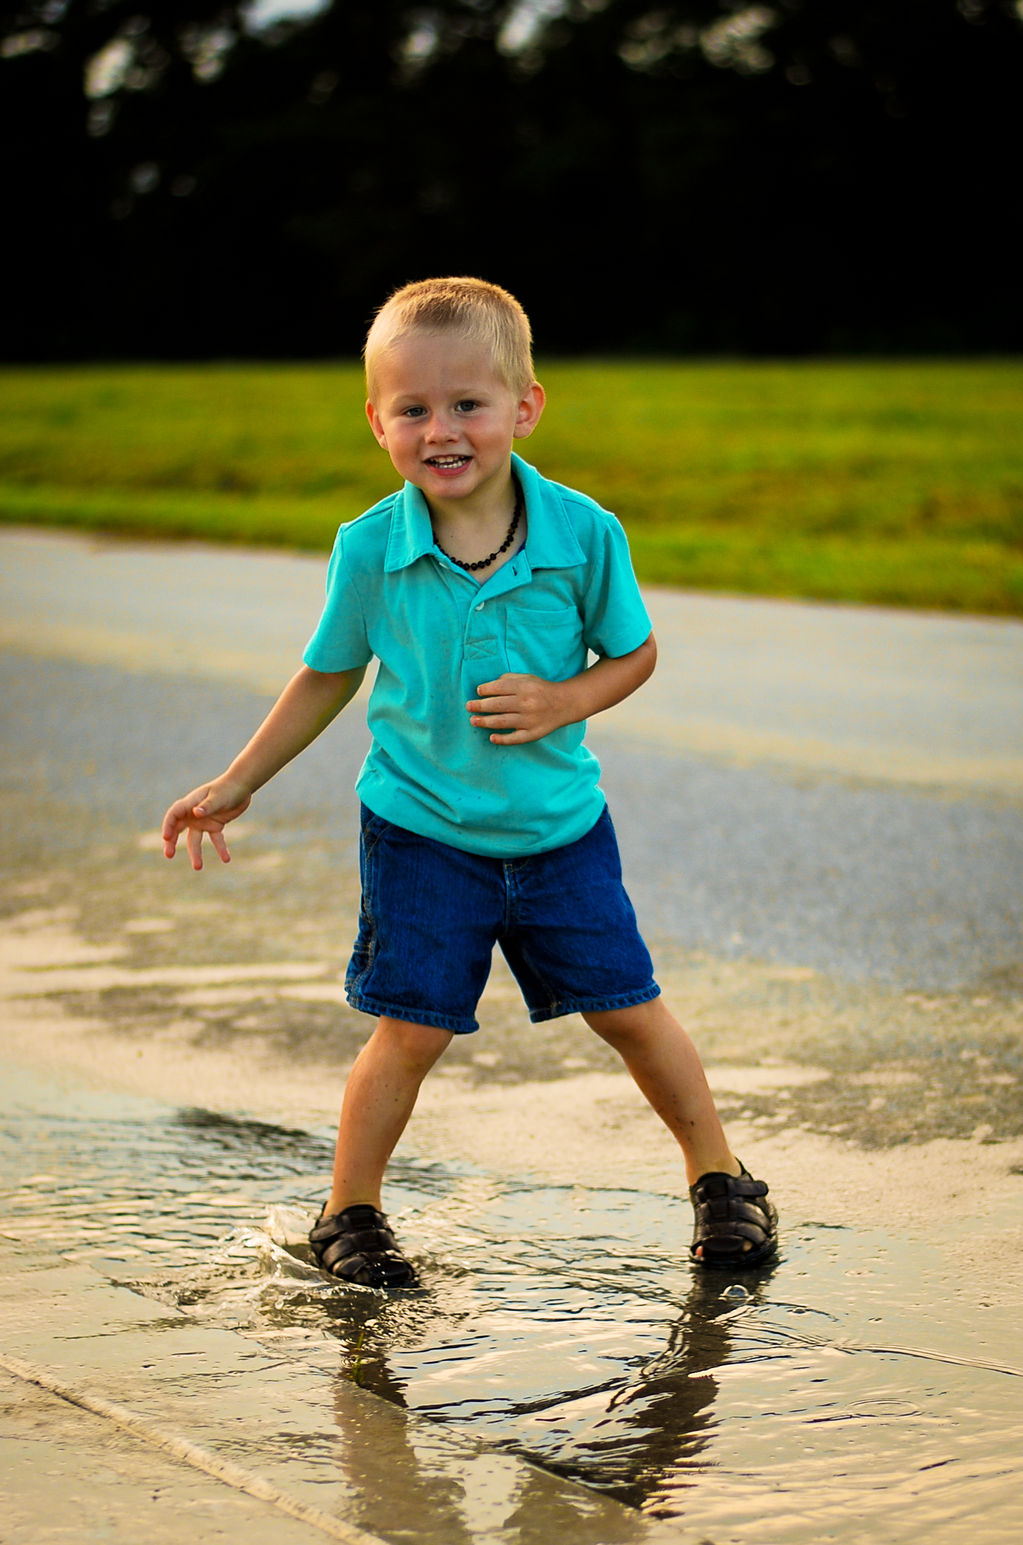 Toddler Portrait Photographer Playing in Puddle Rain